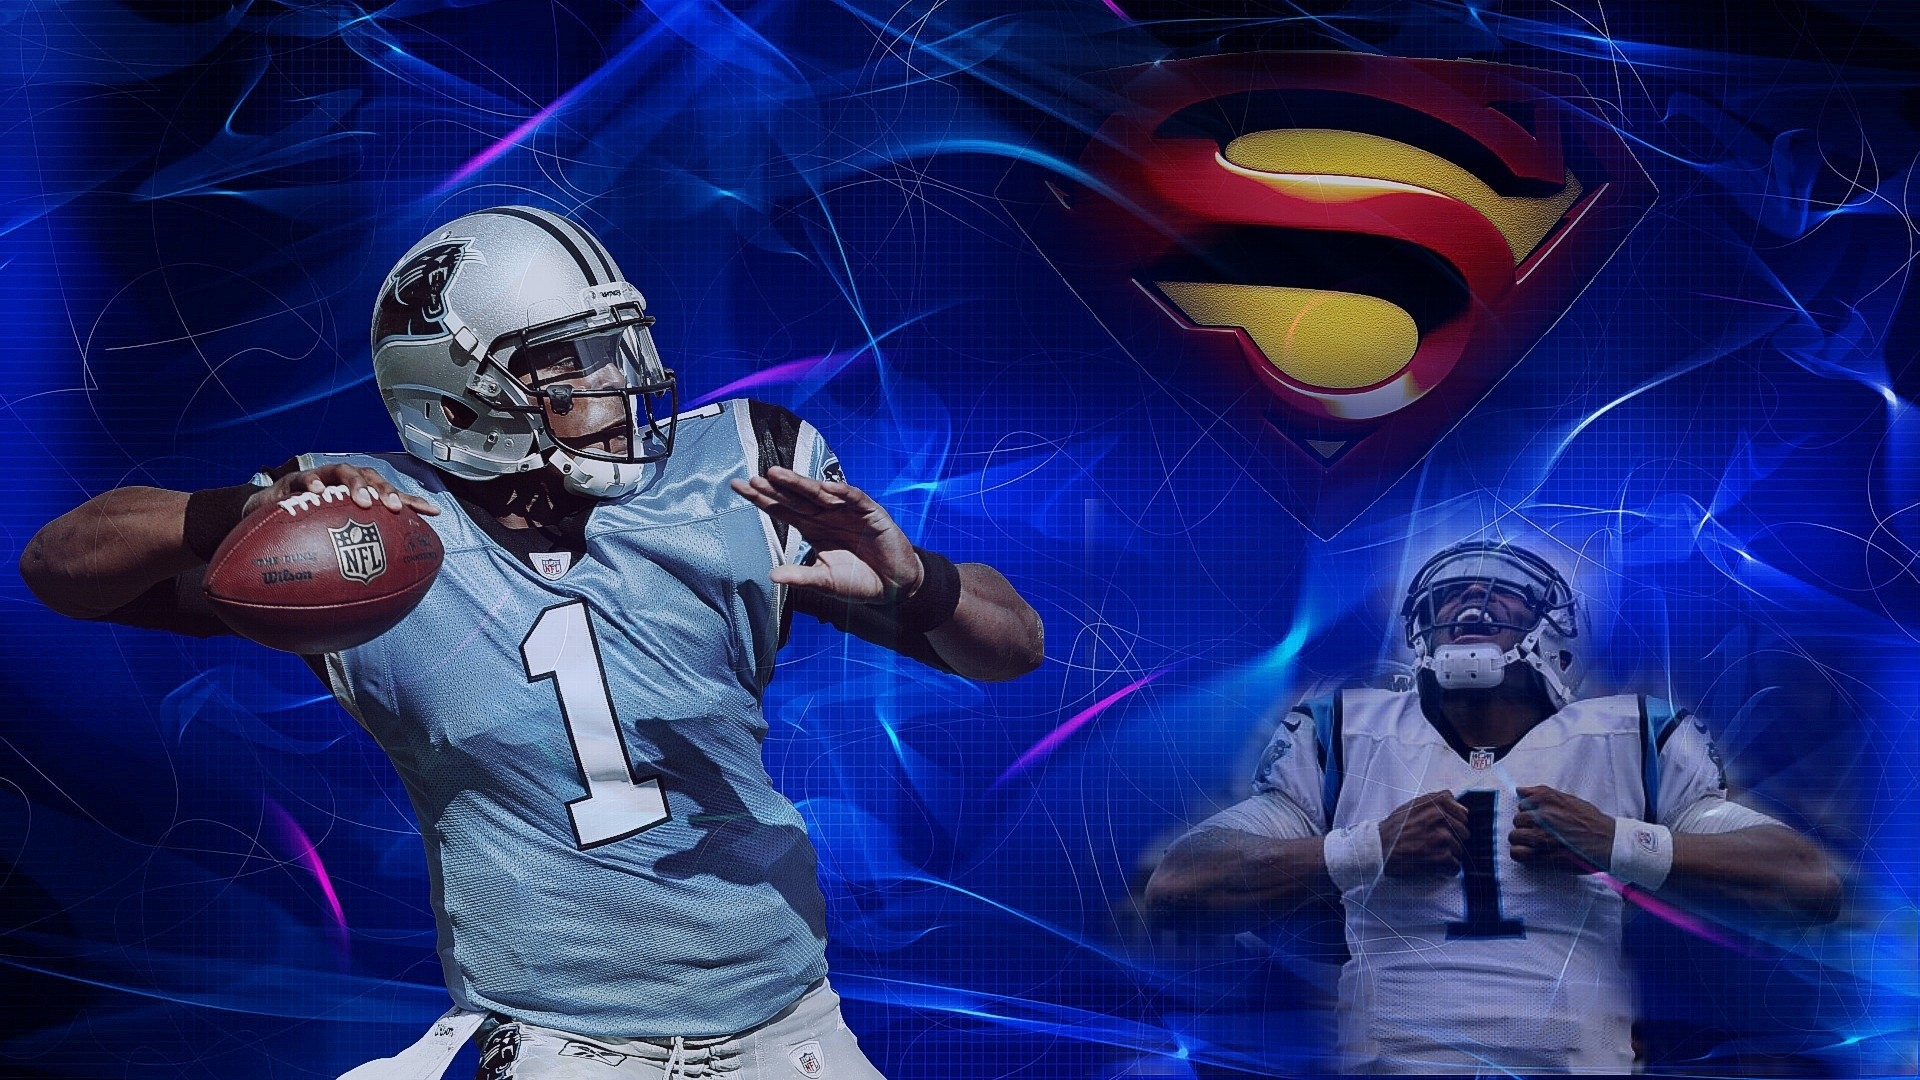 1920x1080 ... Cam Newton Wallpapers Hd Pixelstalk Cam Newton Wallpapers 2017